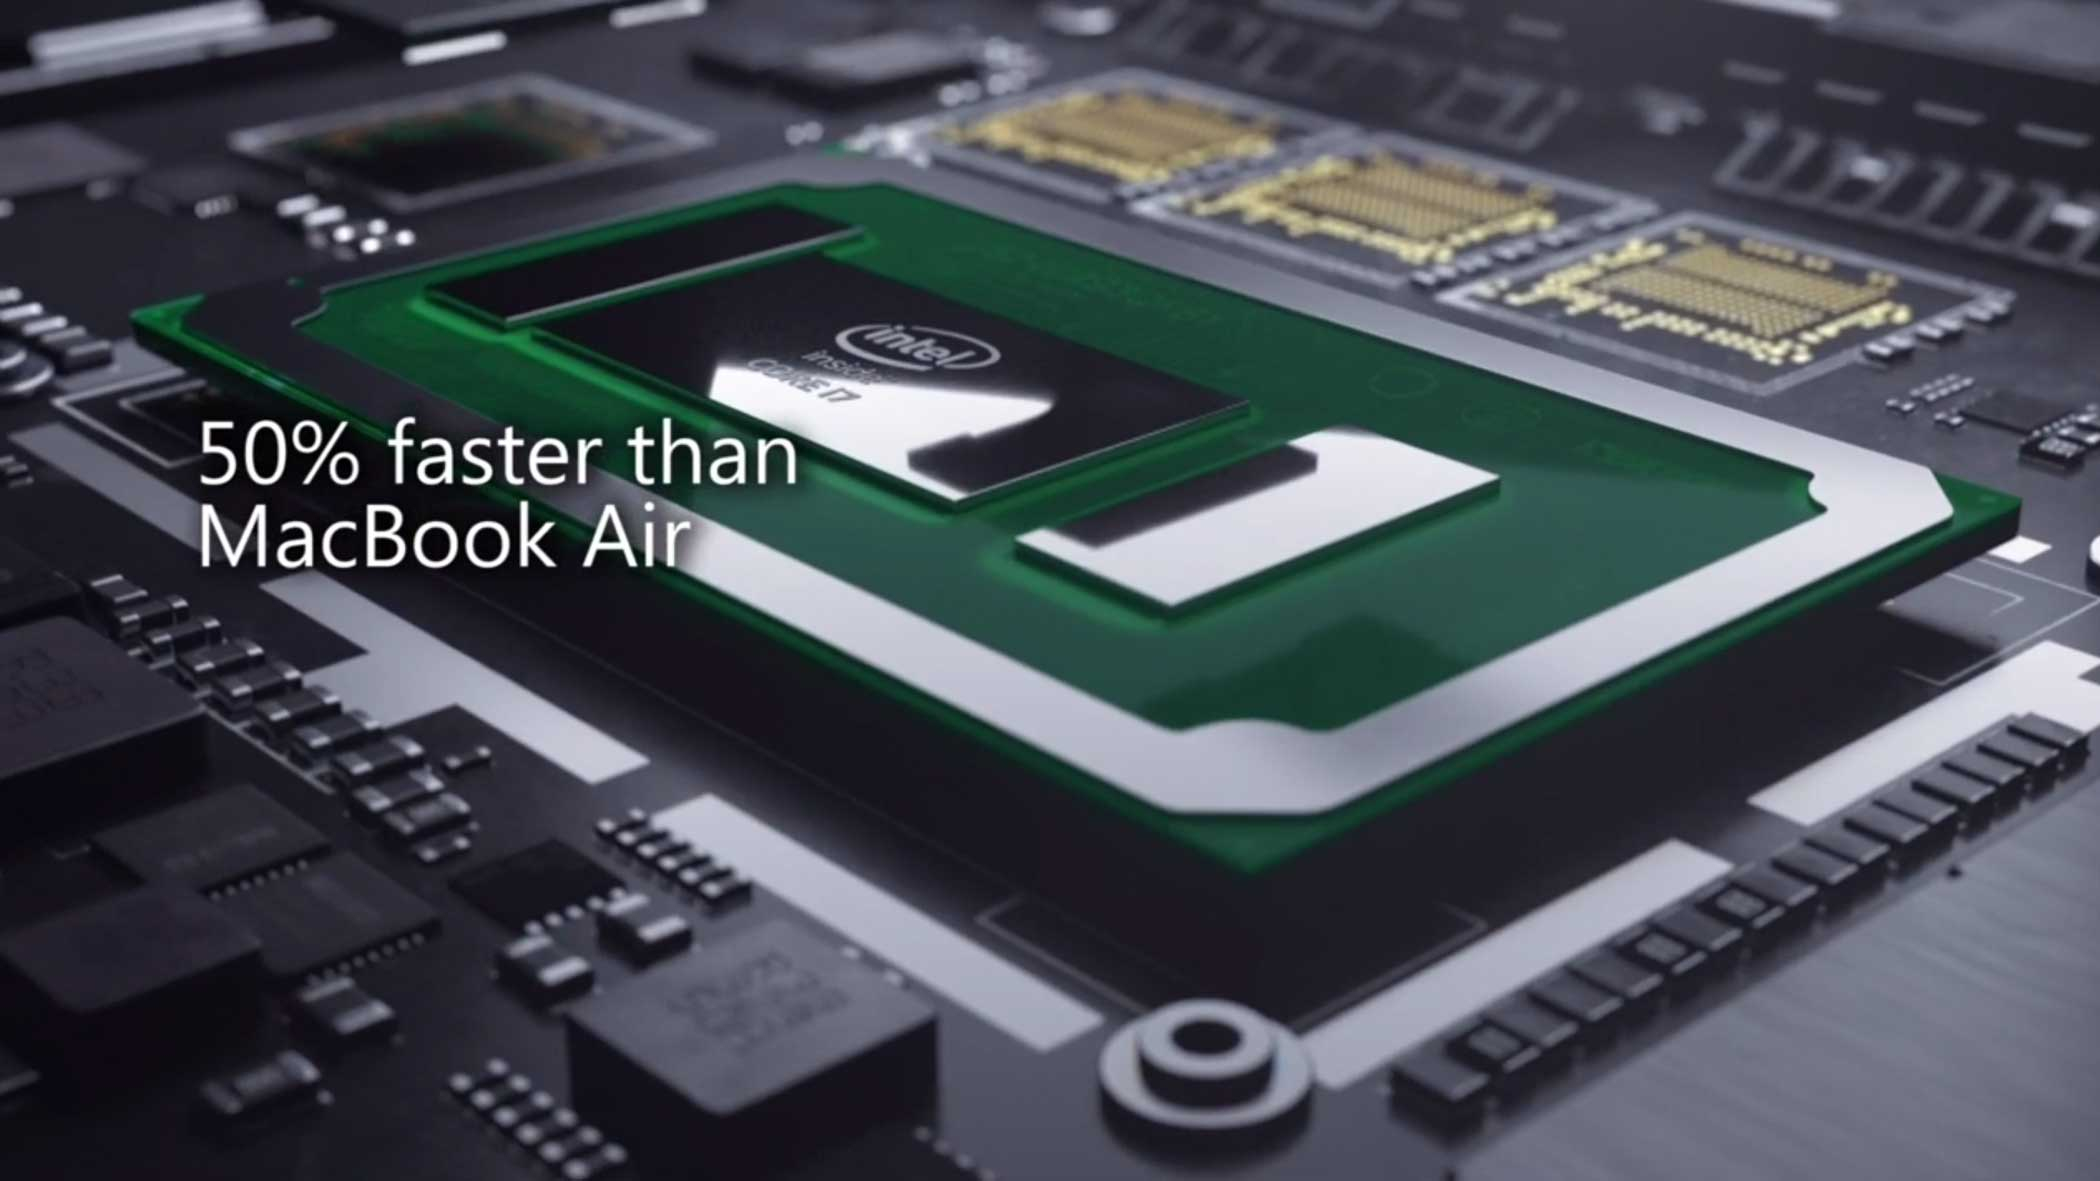 Improved speed with up to 16GM of RAM and 1TB storage.